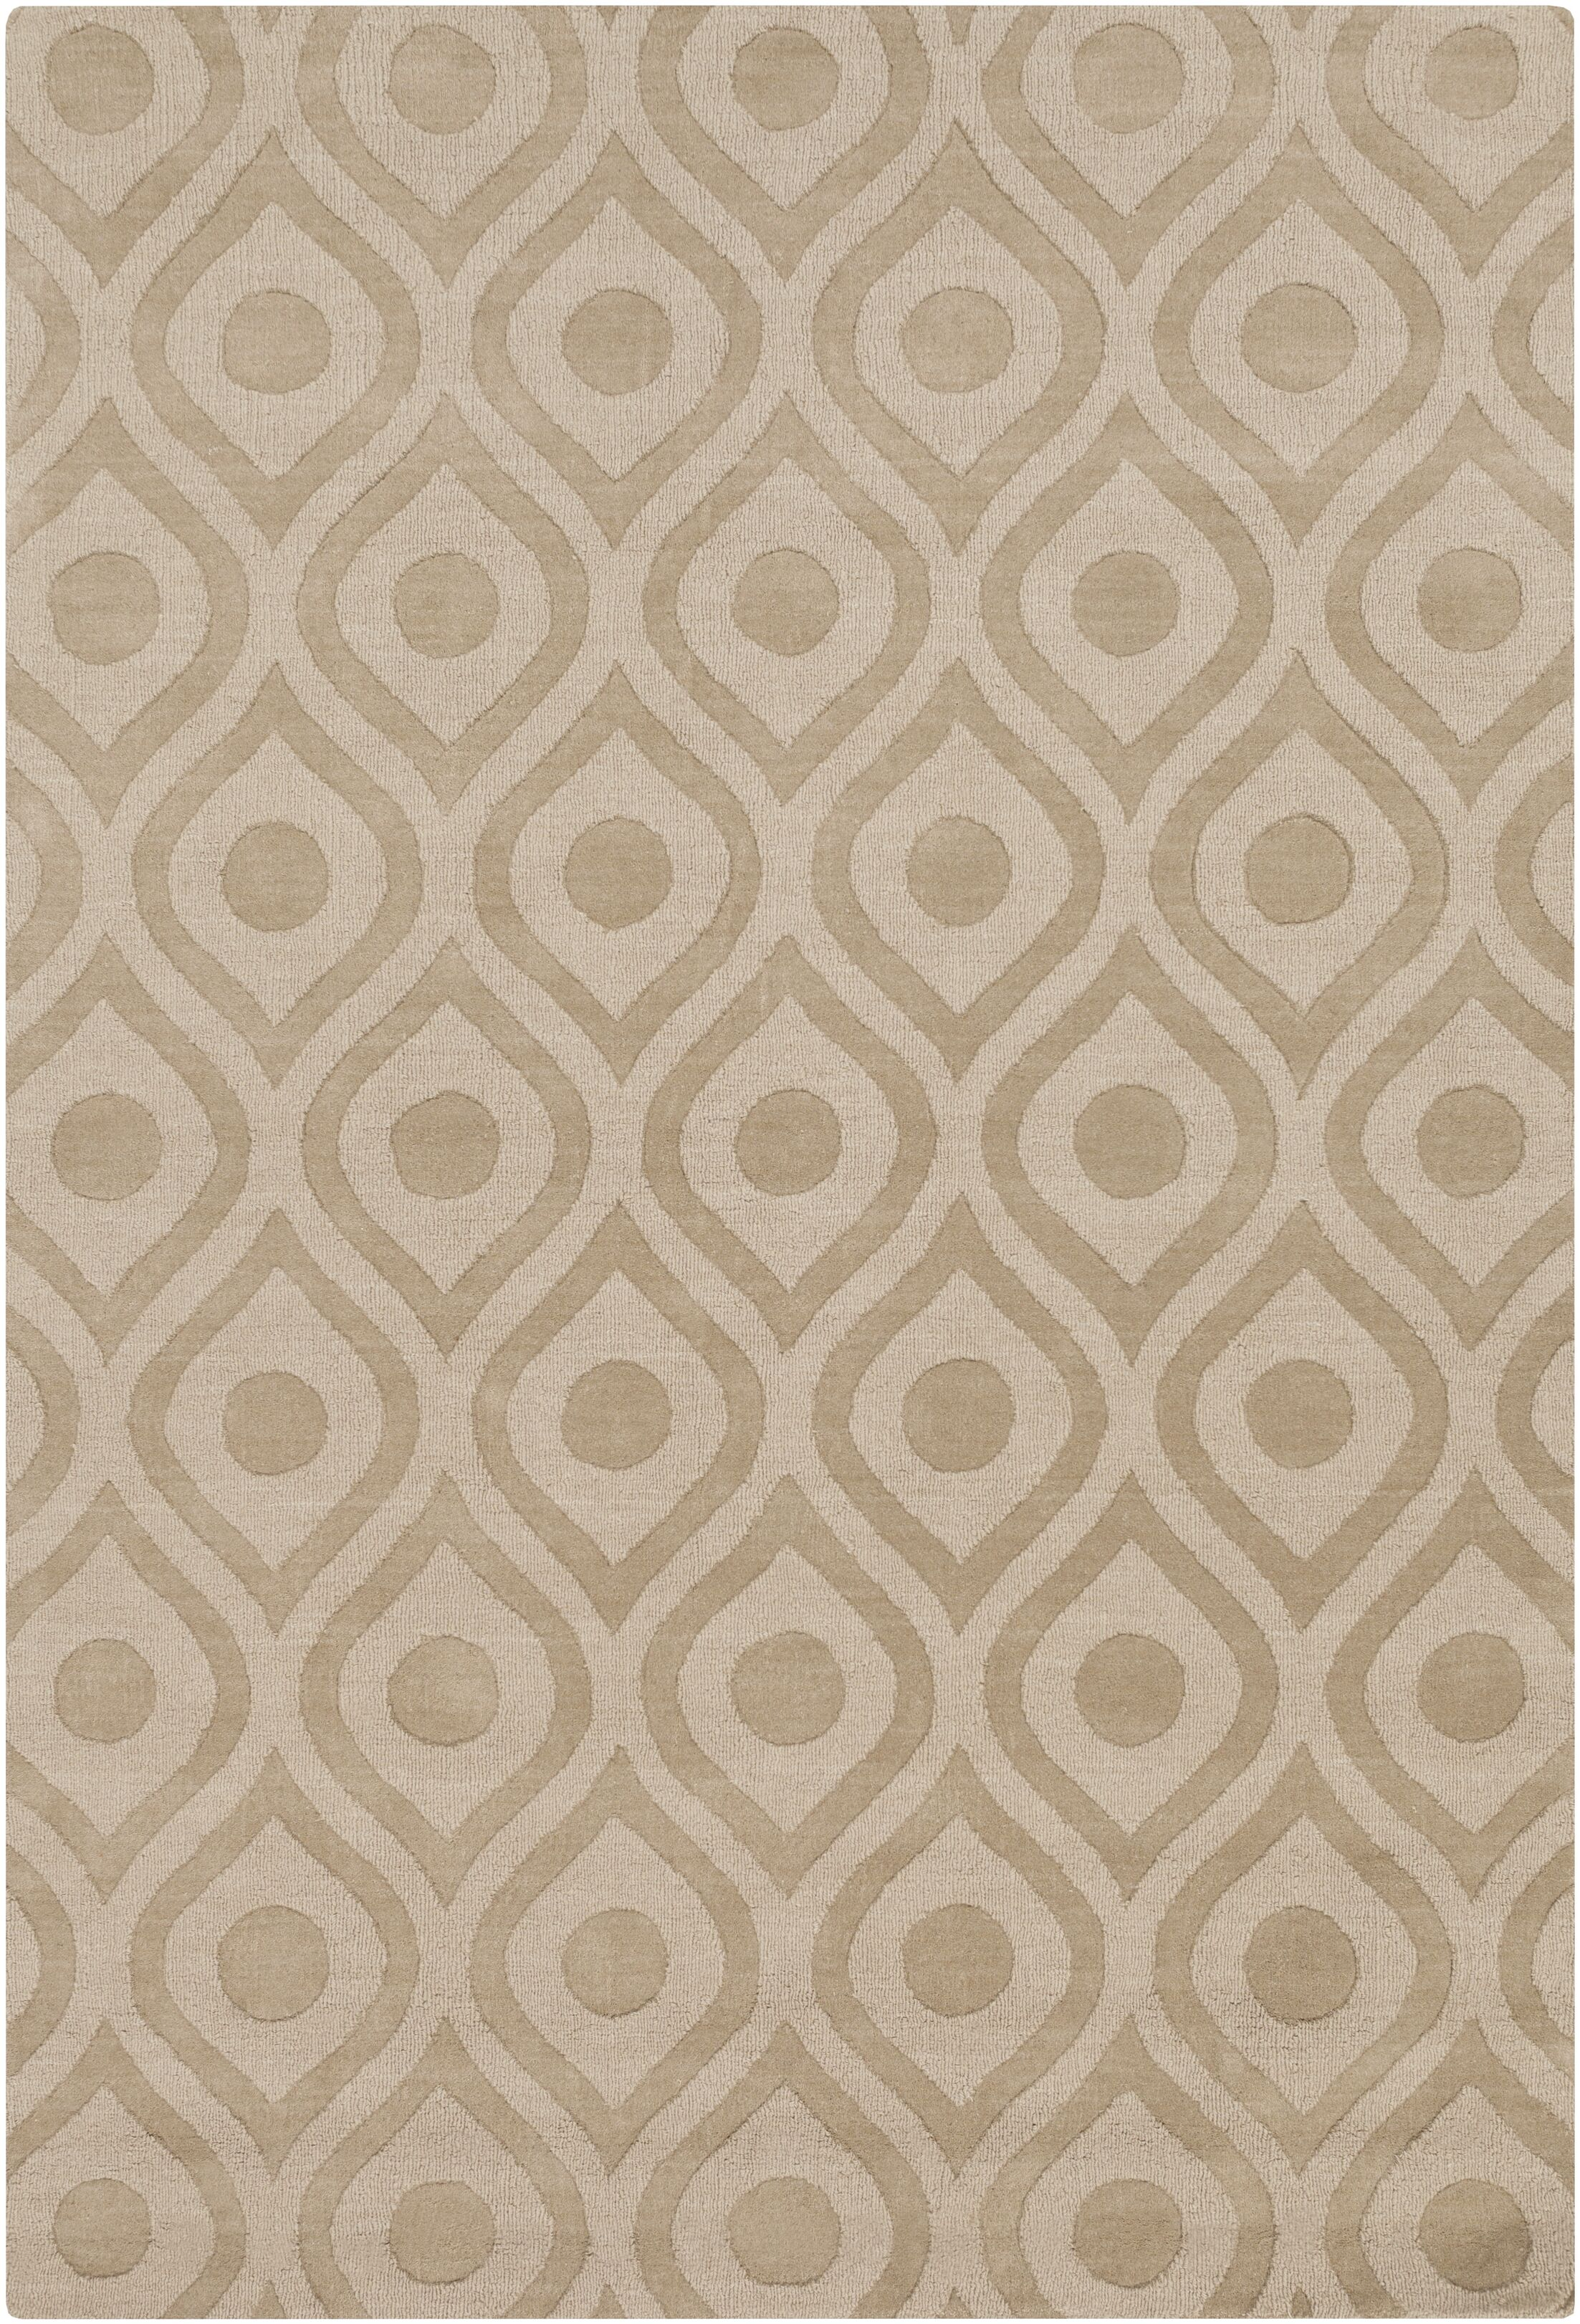 Castro Hand Woven Wool Beige Area Rug Rug Size: Rectangle 2' x 3'